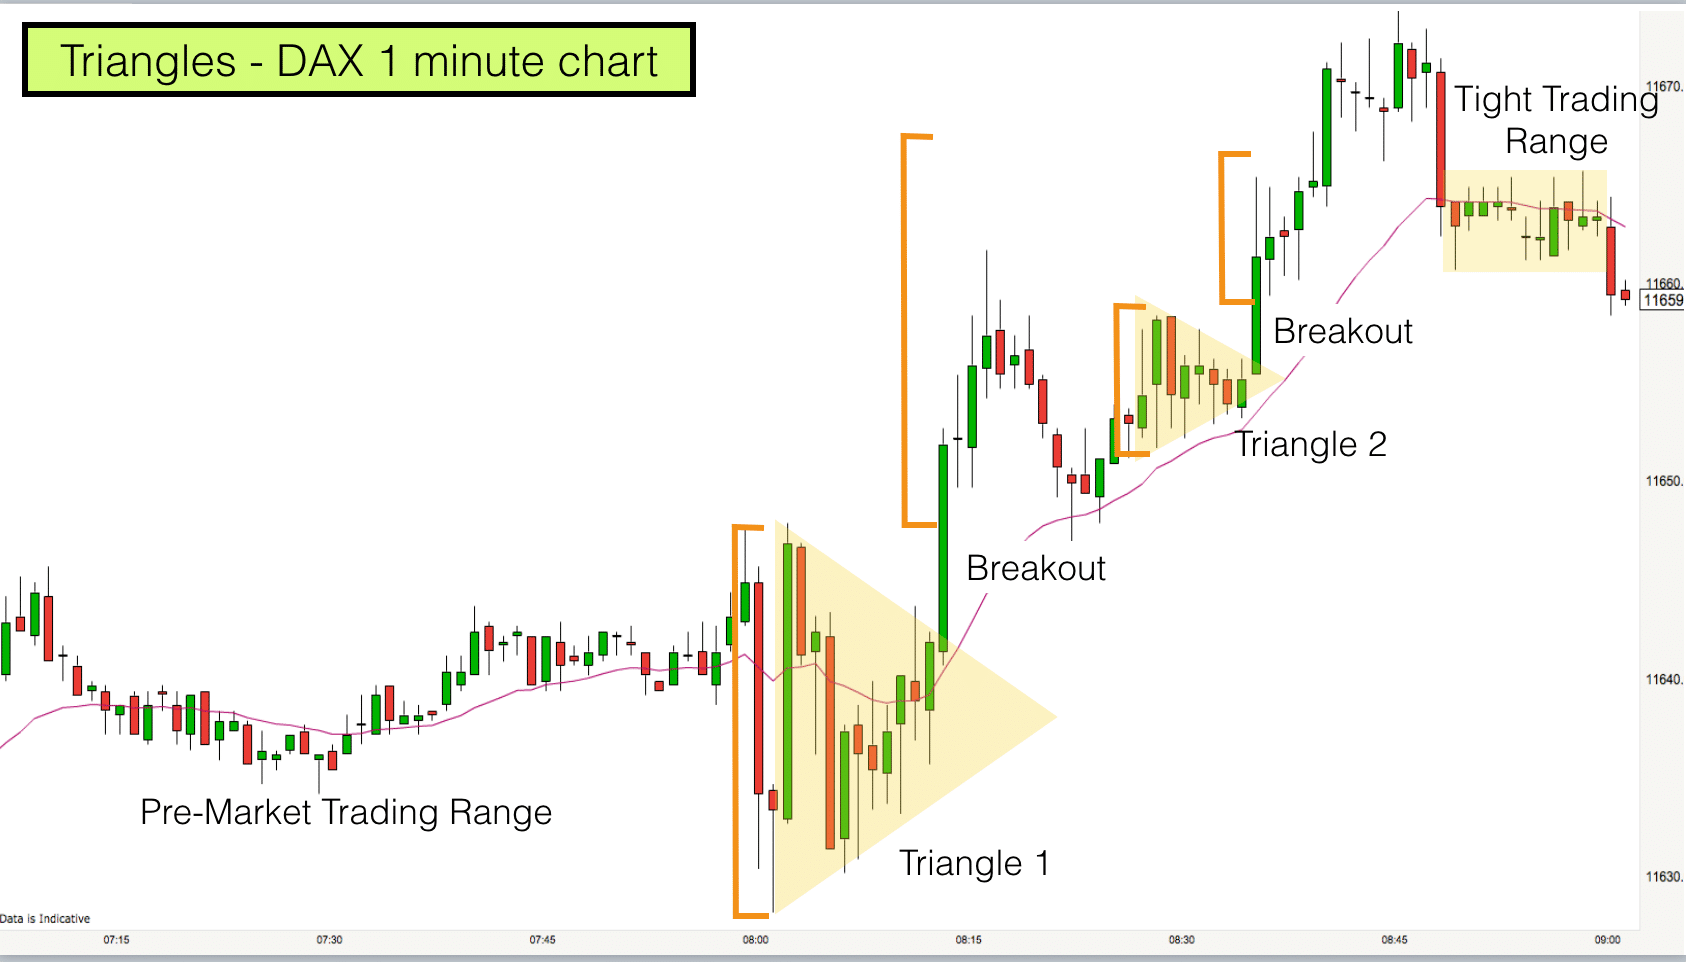 Triangles on the DAX index 3rd Feb 2017